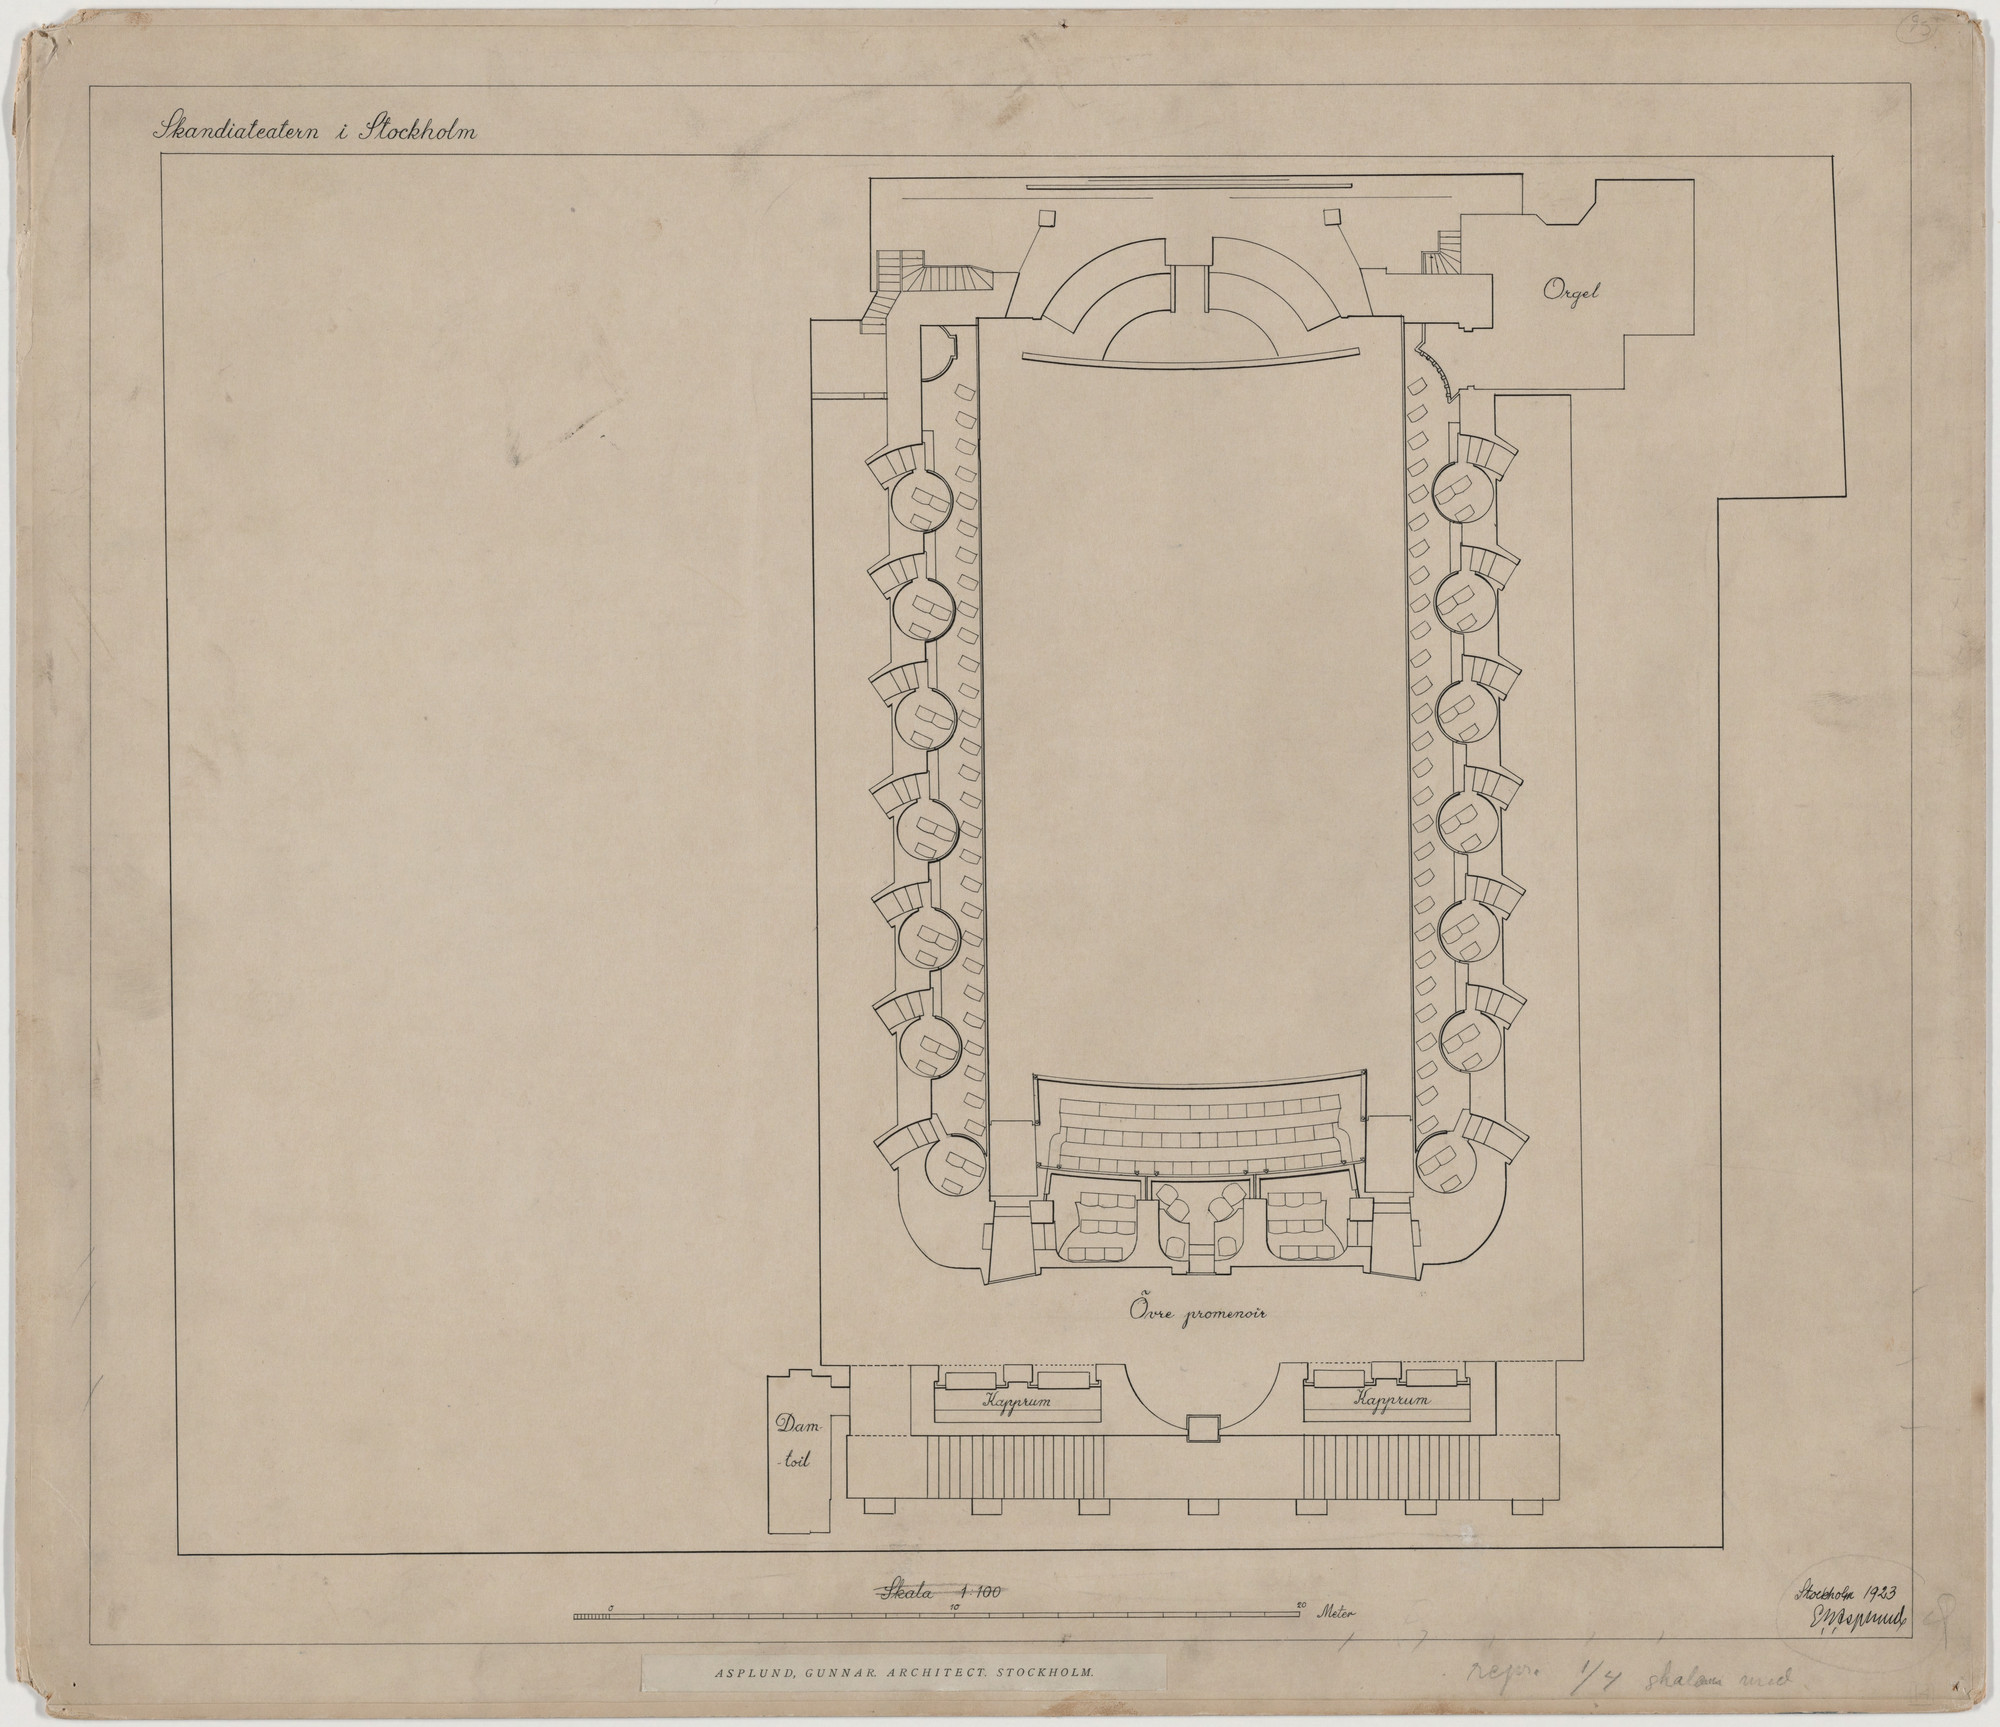 Erik Gunnar Asplund. Skandia Cinema, Stockholm, Sweden, Floor plan of mezzanine. 1923